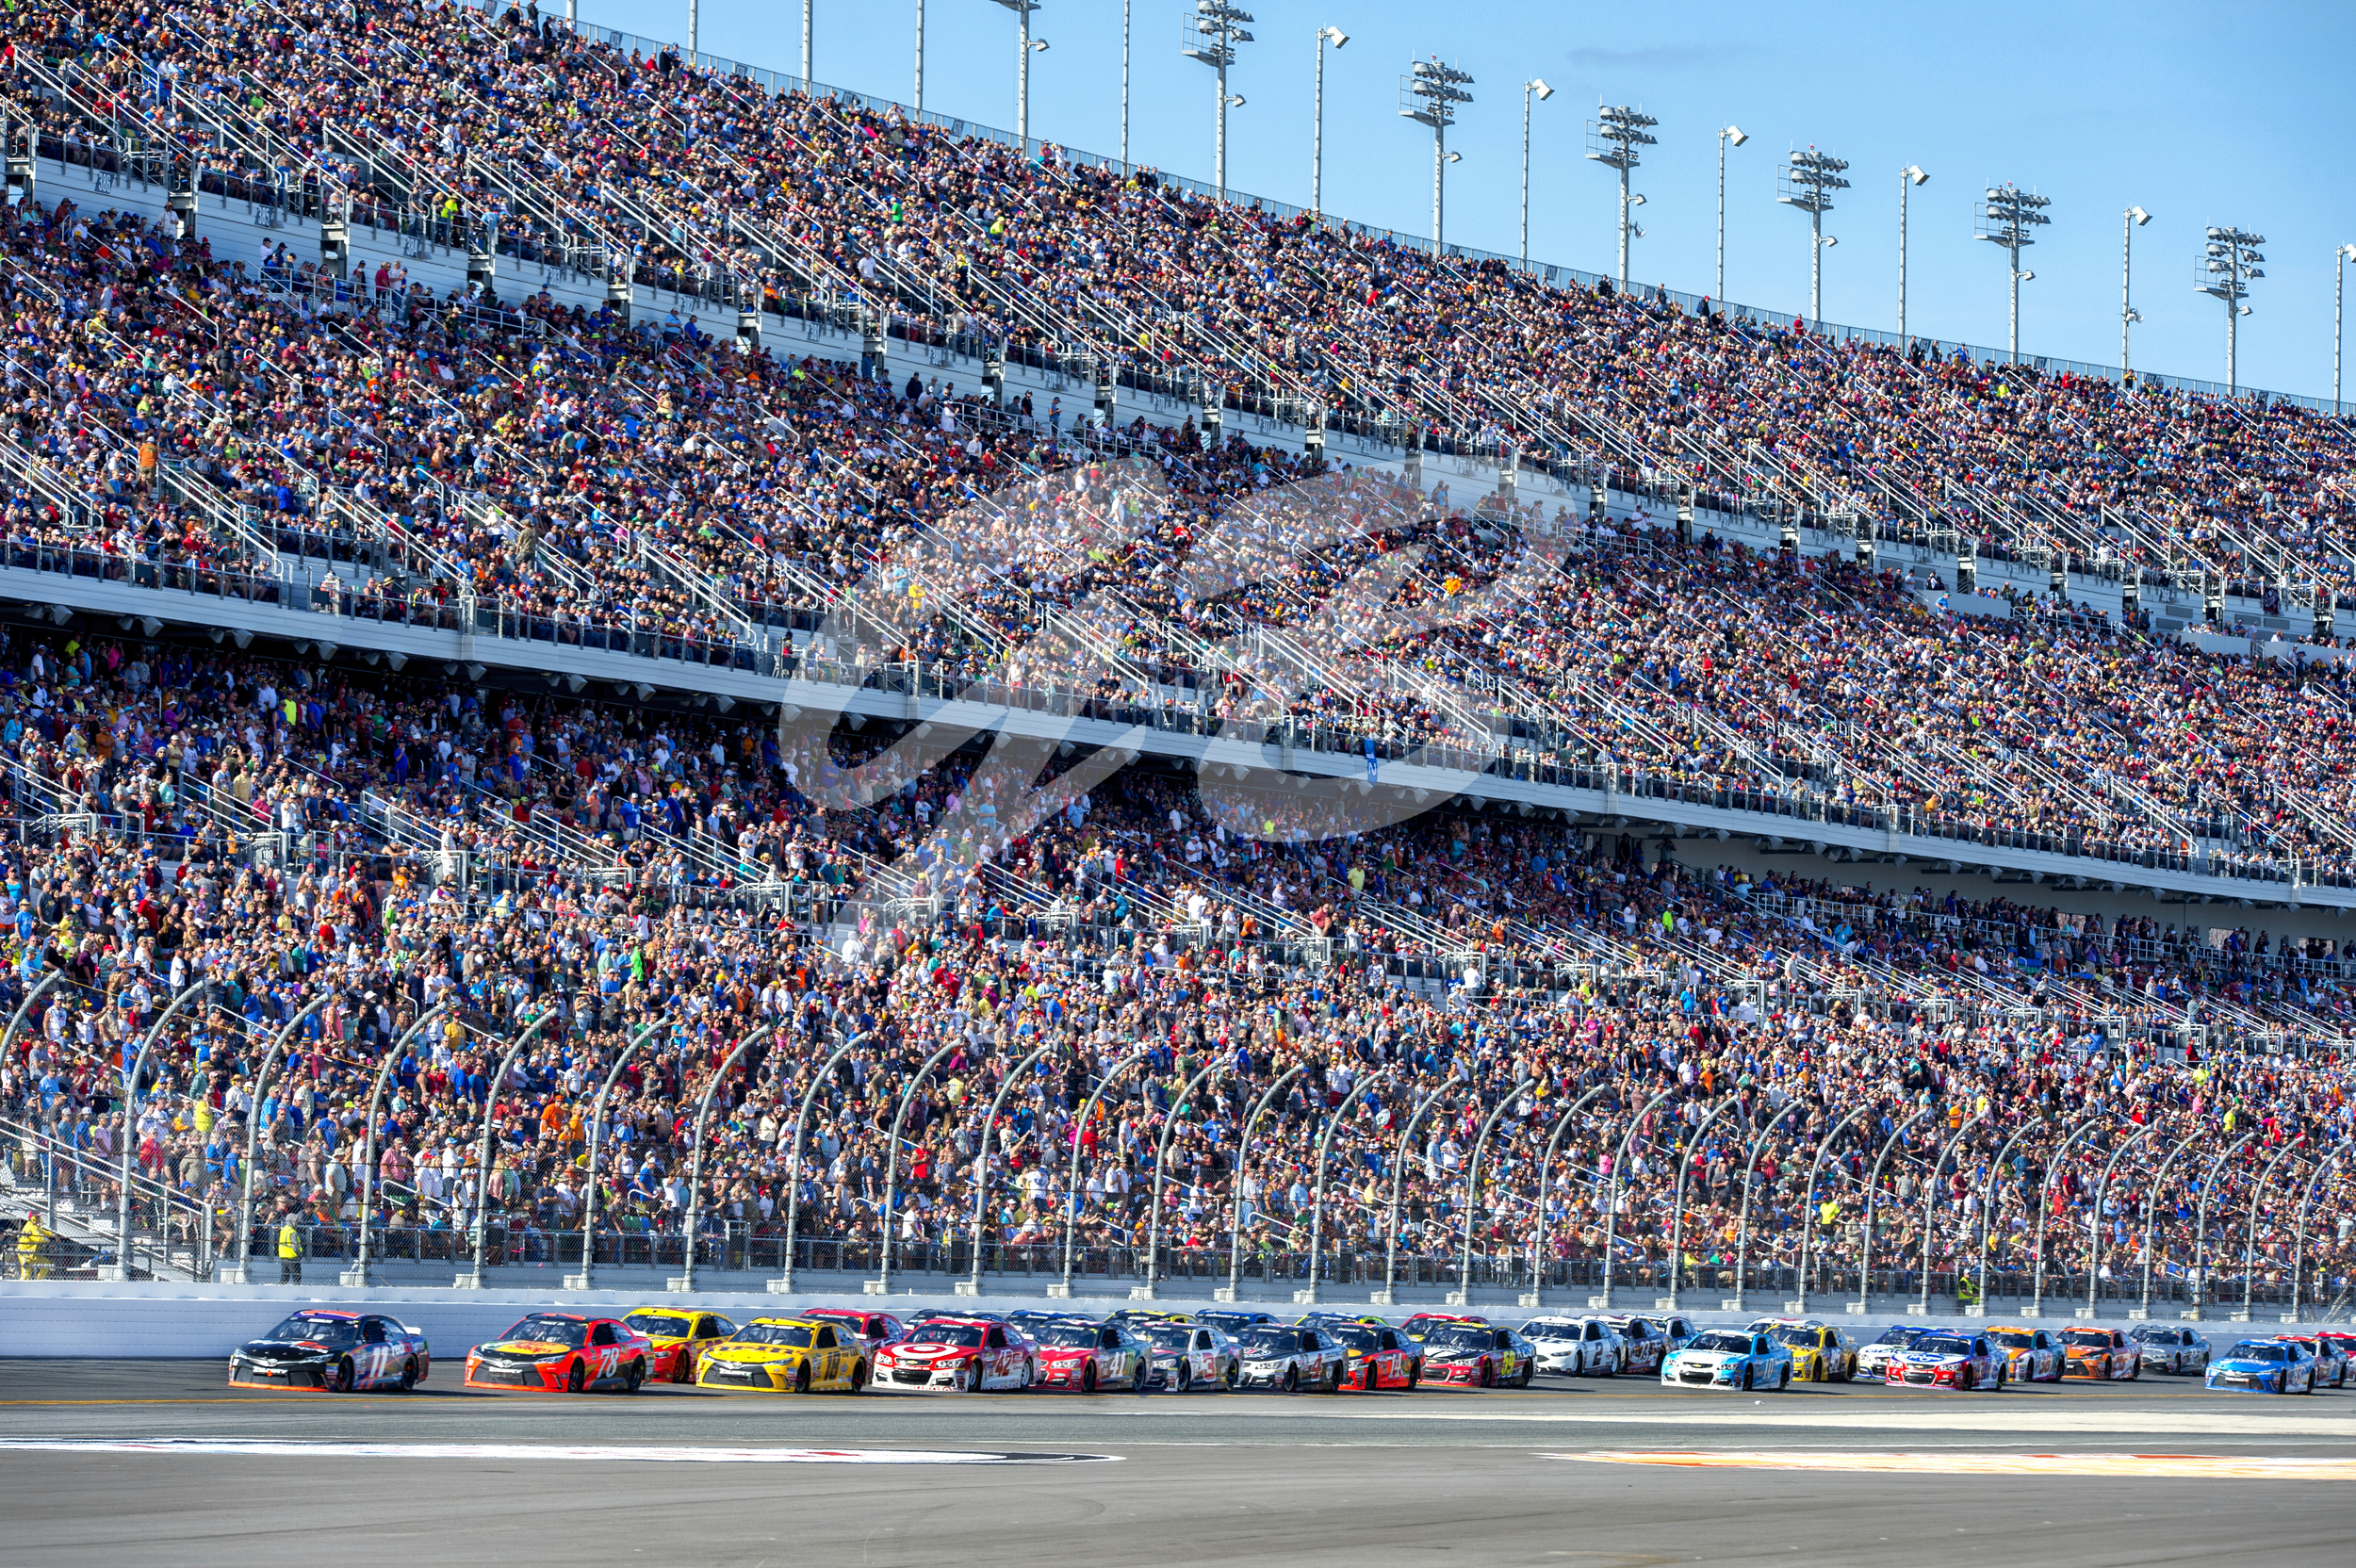 Denny Hamlin leads the field in the #11 FedEx Express Toyota as he enters turn one during the Daytona 500